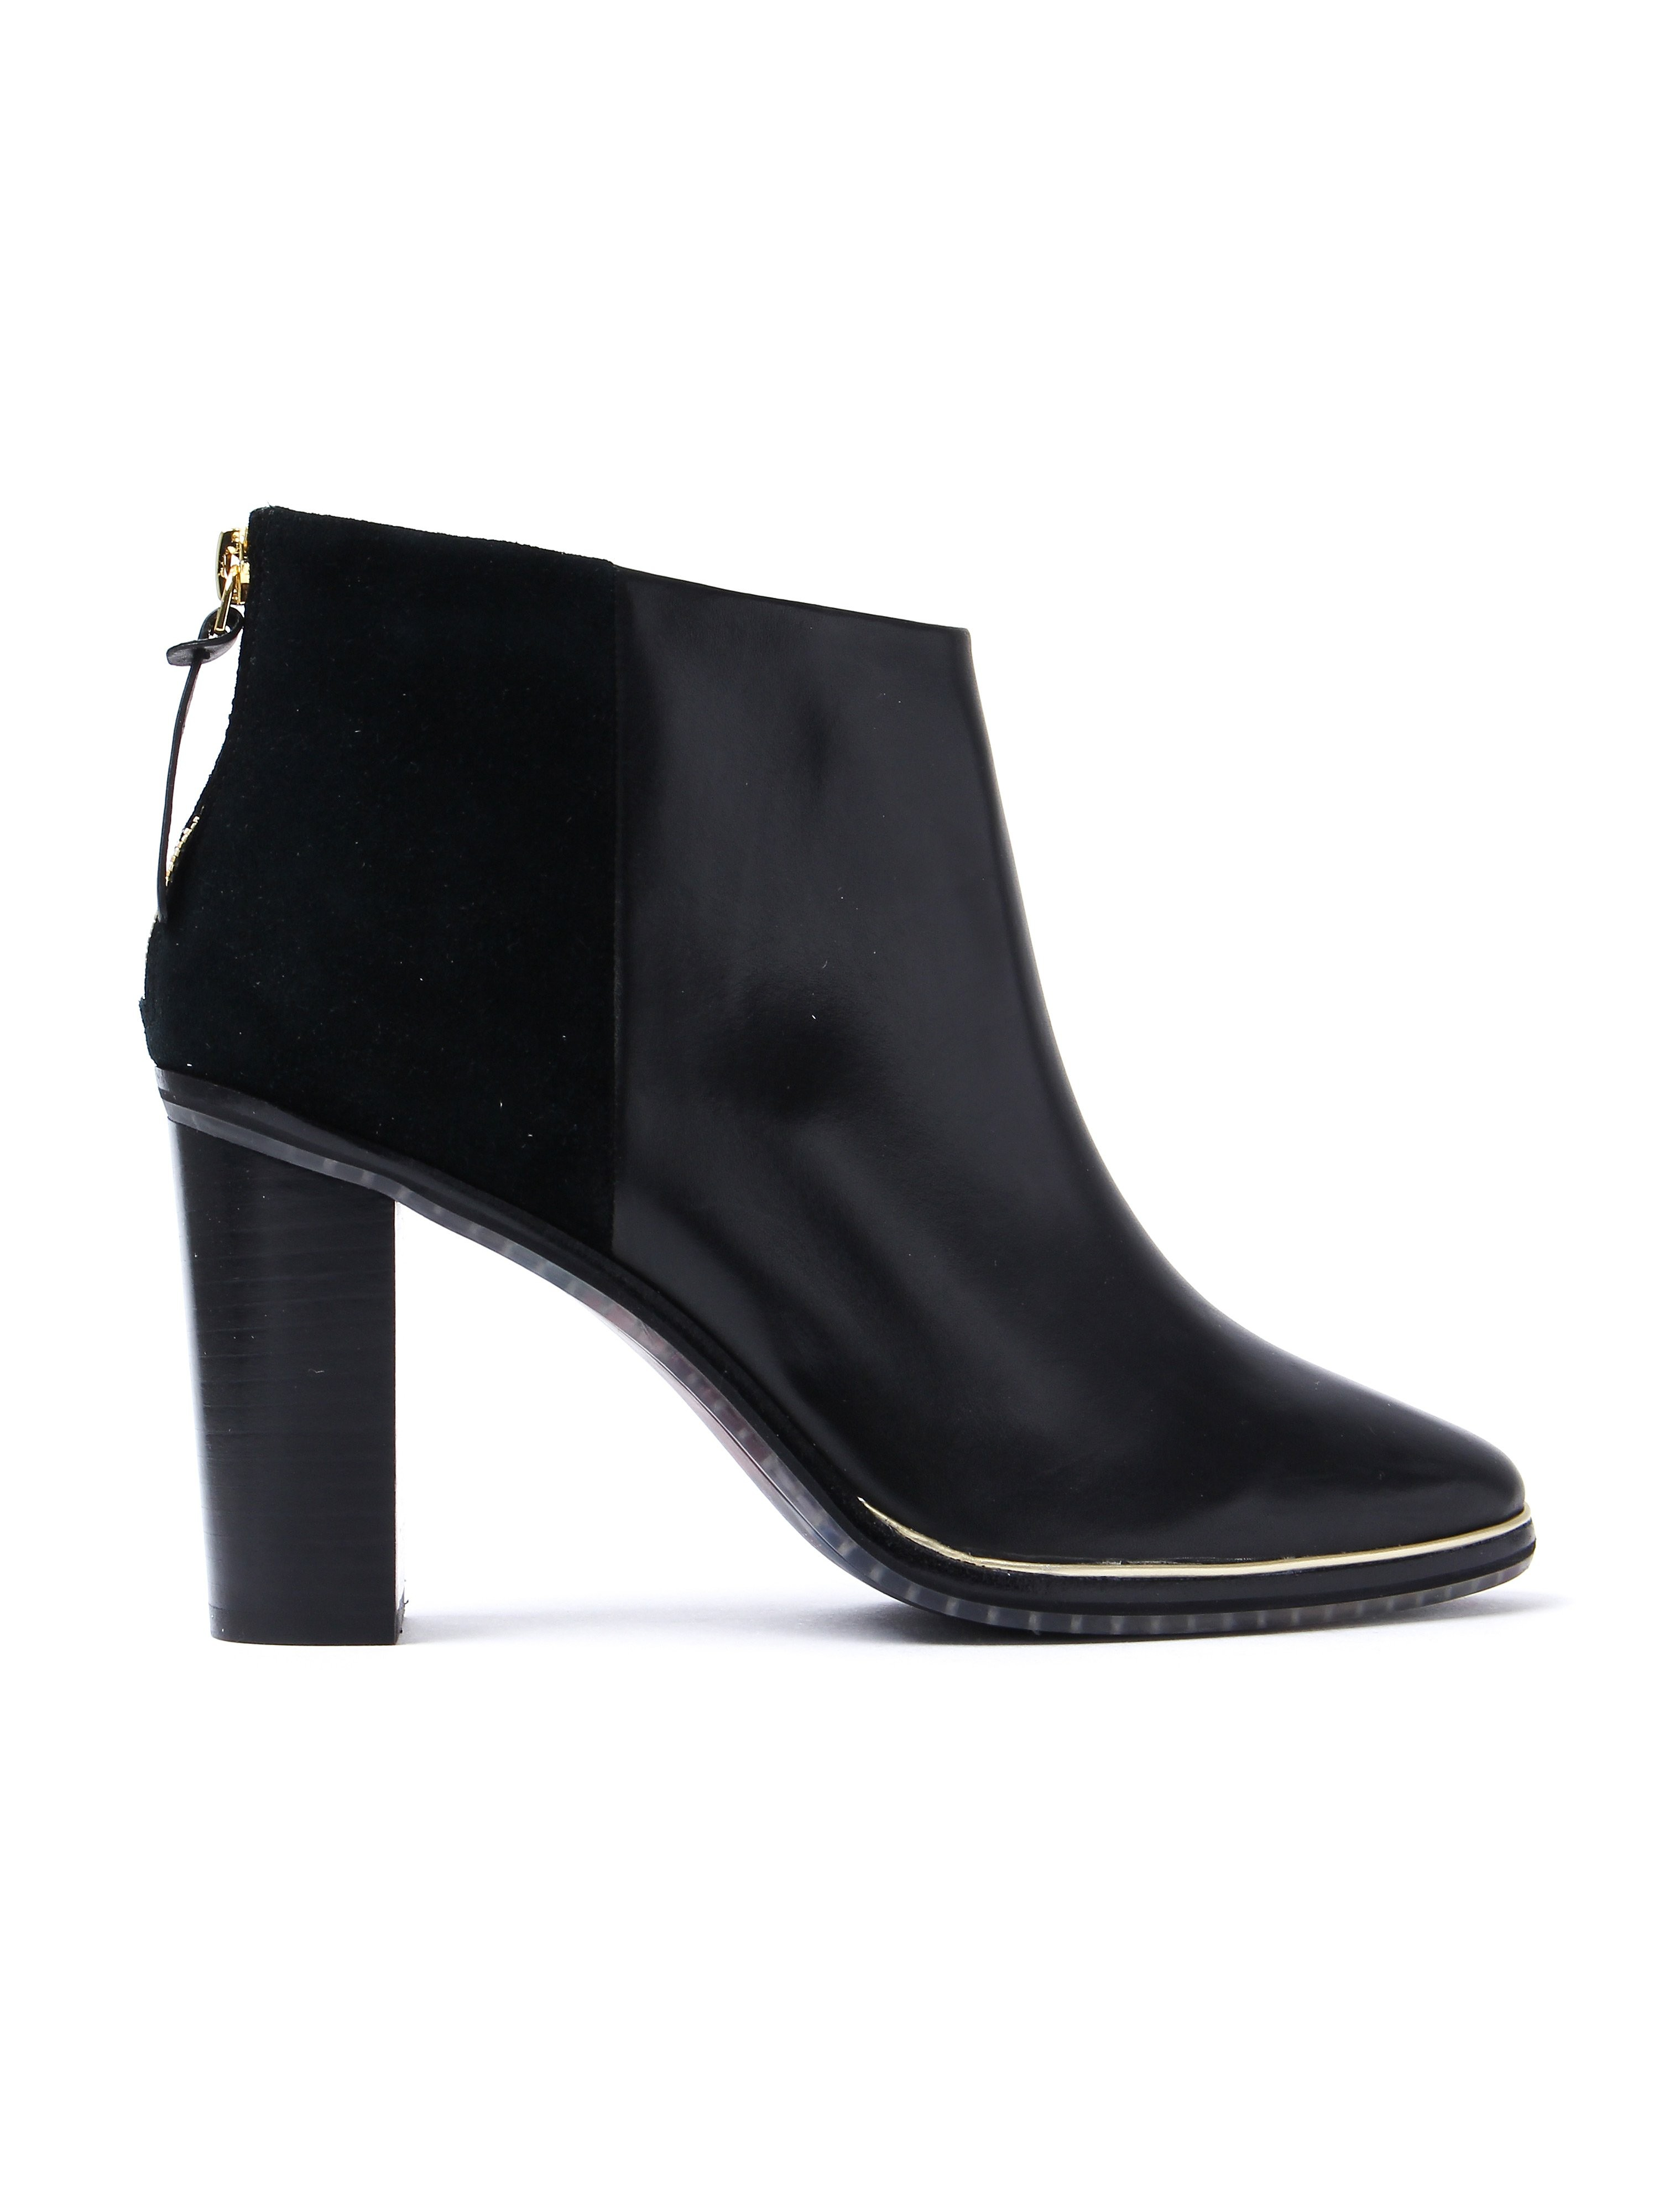 Ted Baker Women's Azalia Boots - Black Leather Suede